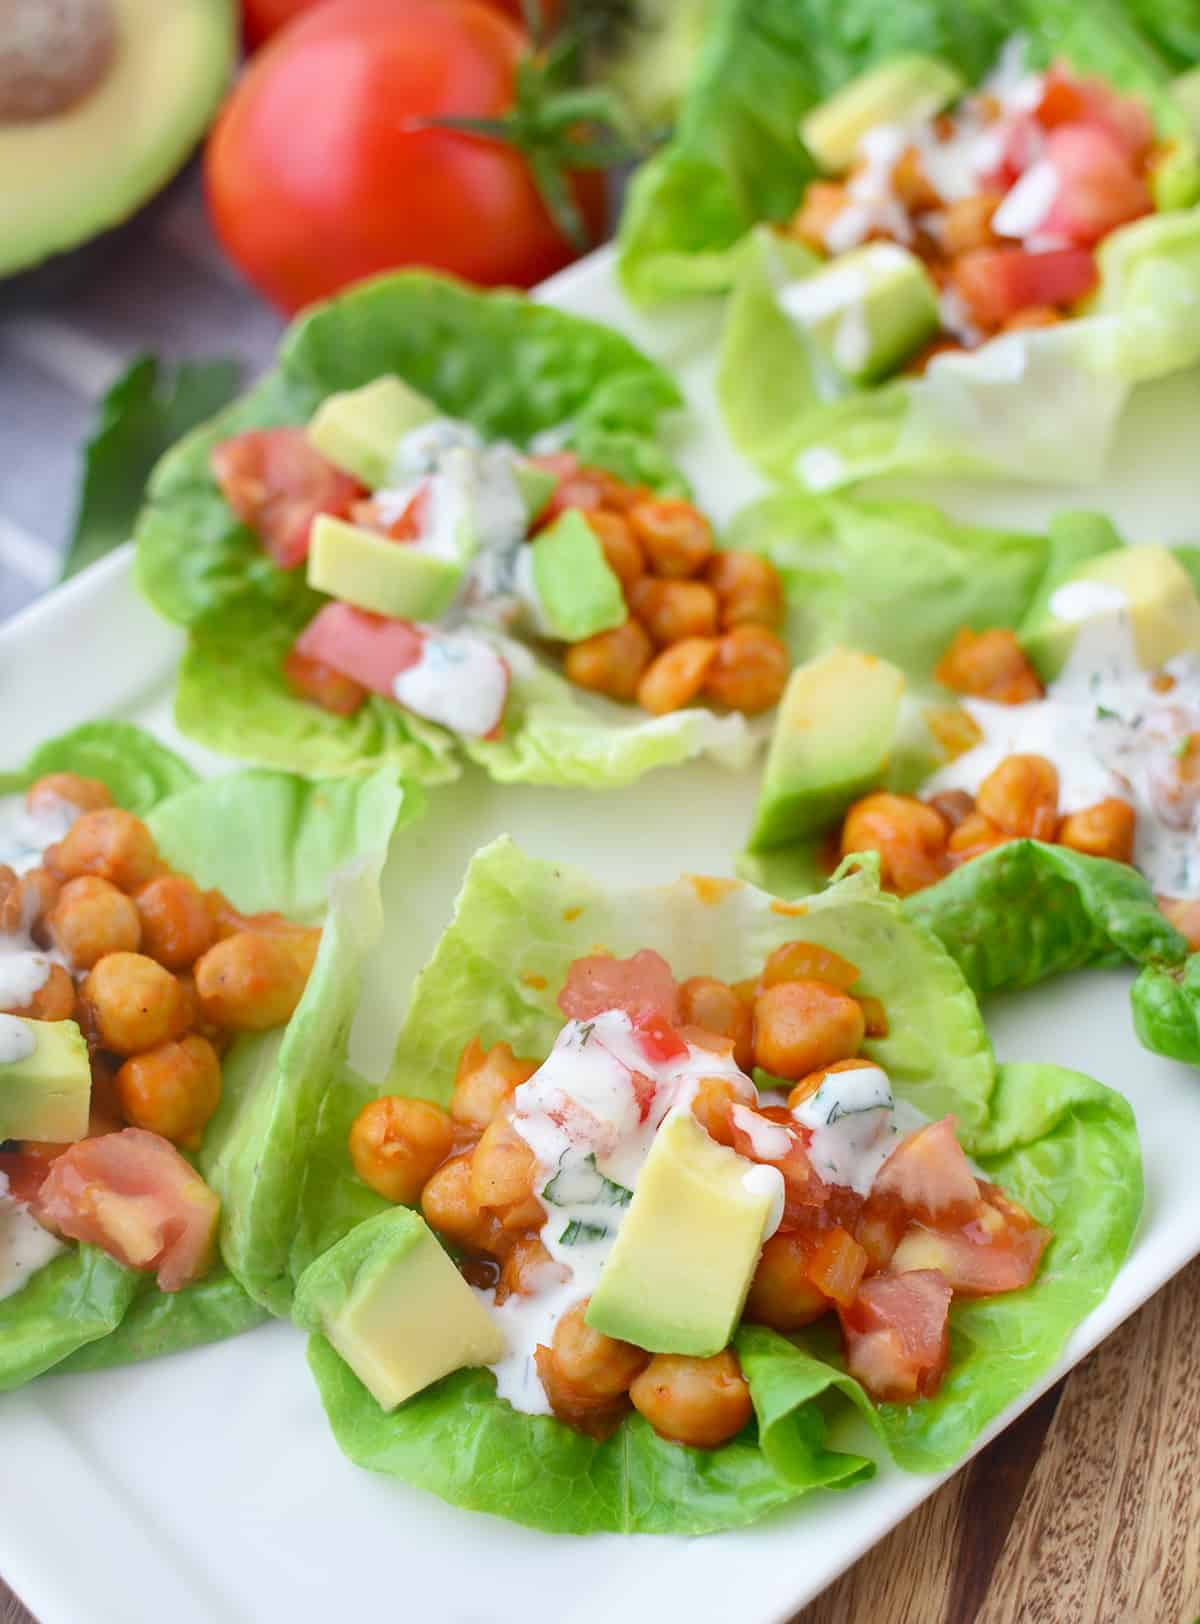 Buffalo Chickpea Lettuce Wraps! You are going to love these vegan and gluten-free wraps, ready in less than 20 minutes! #vegan #glutenfree #healthy | www.delishknowledge.com